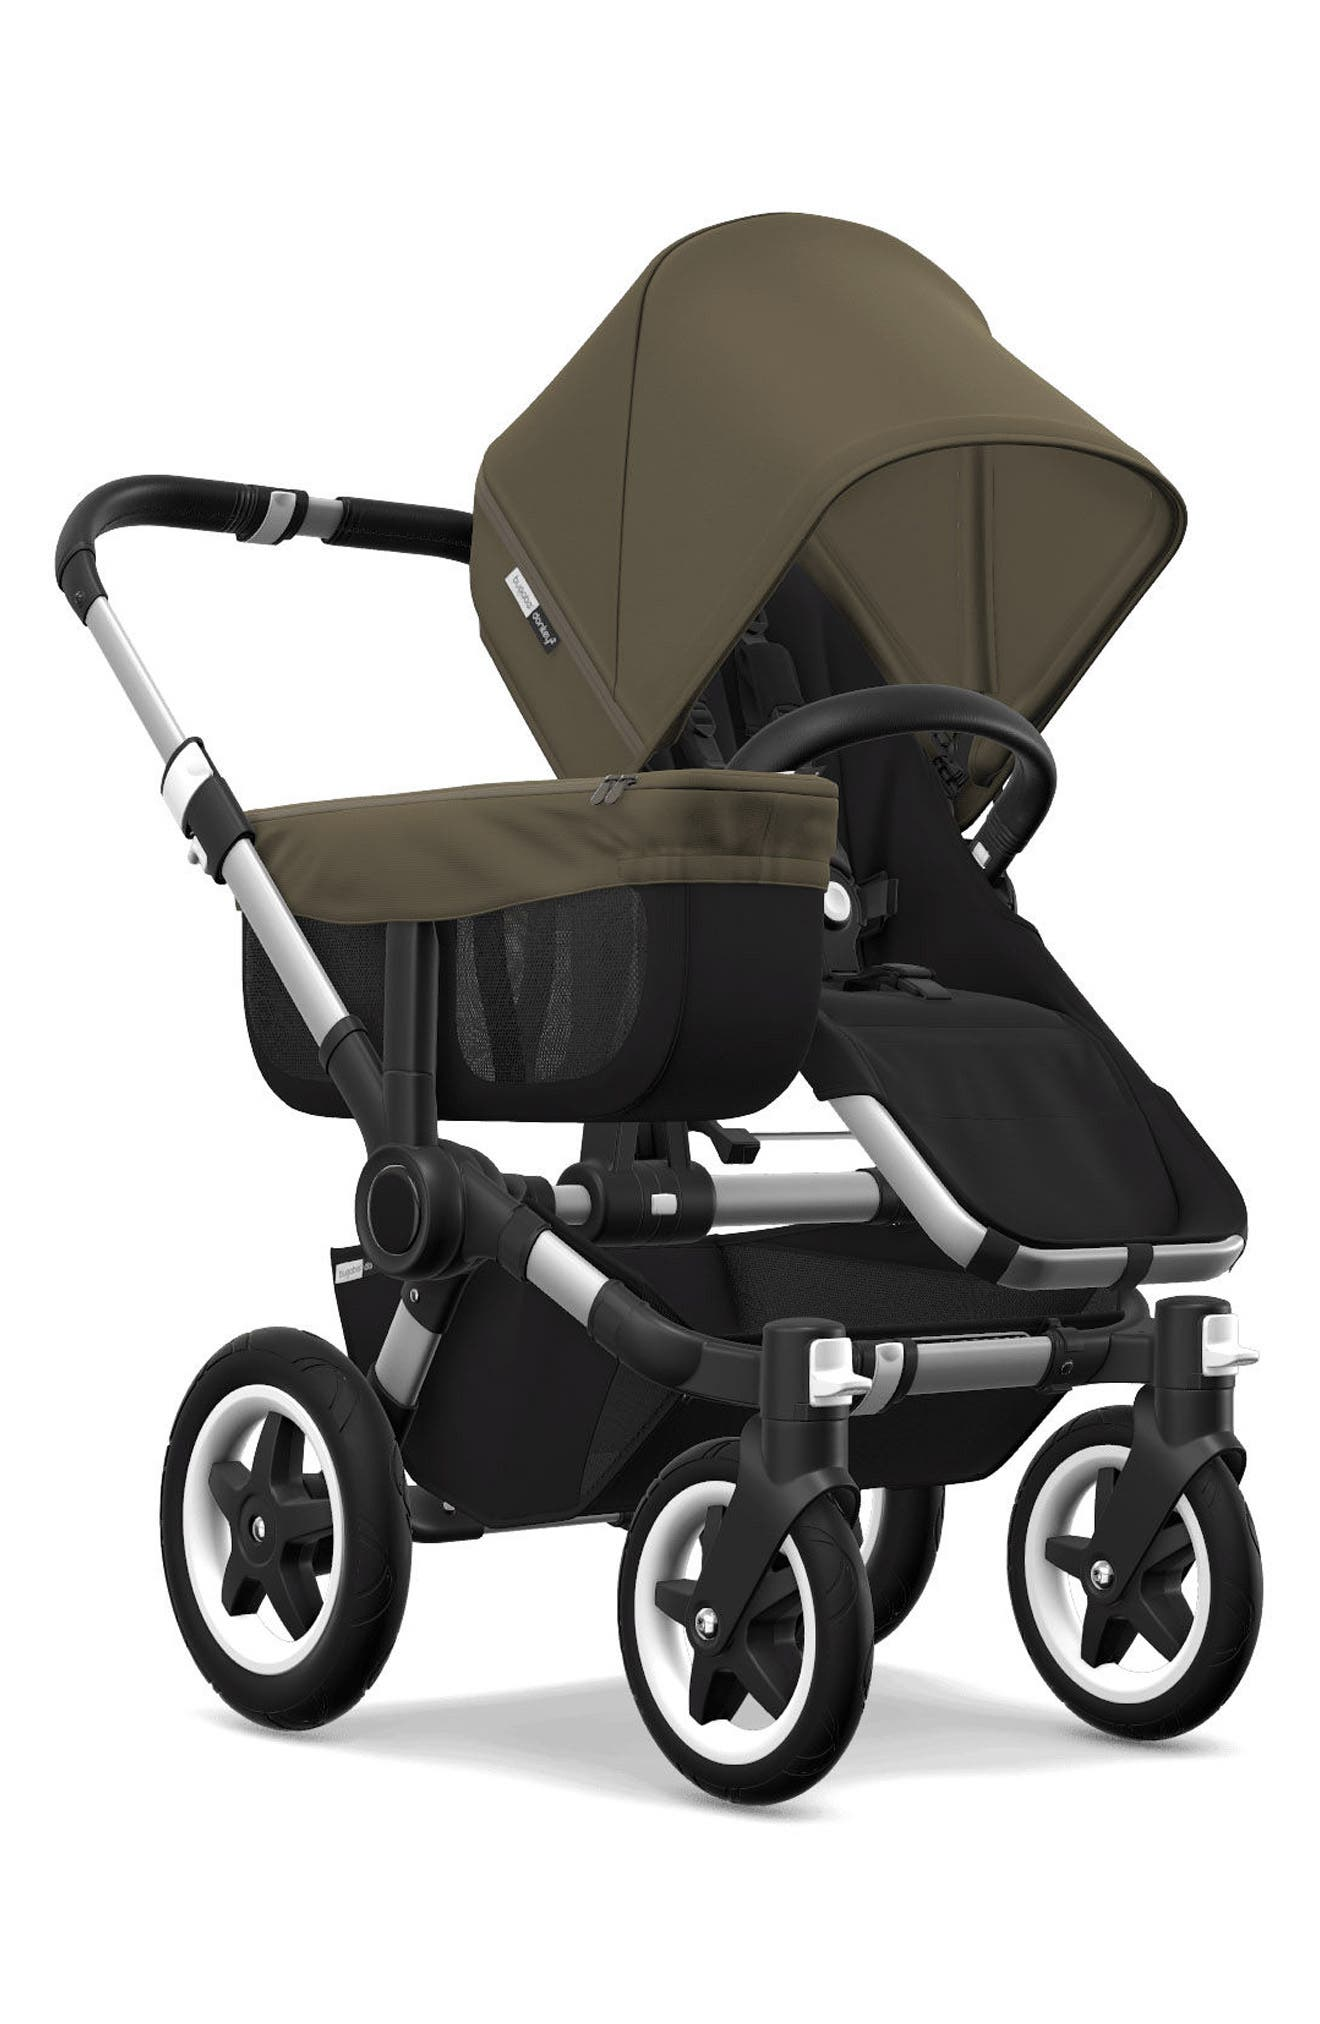 Main Image - Bugaboo Side Luggage Basket Cover for Donkey2 Stroller